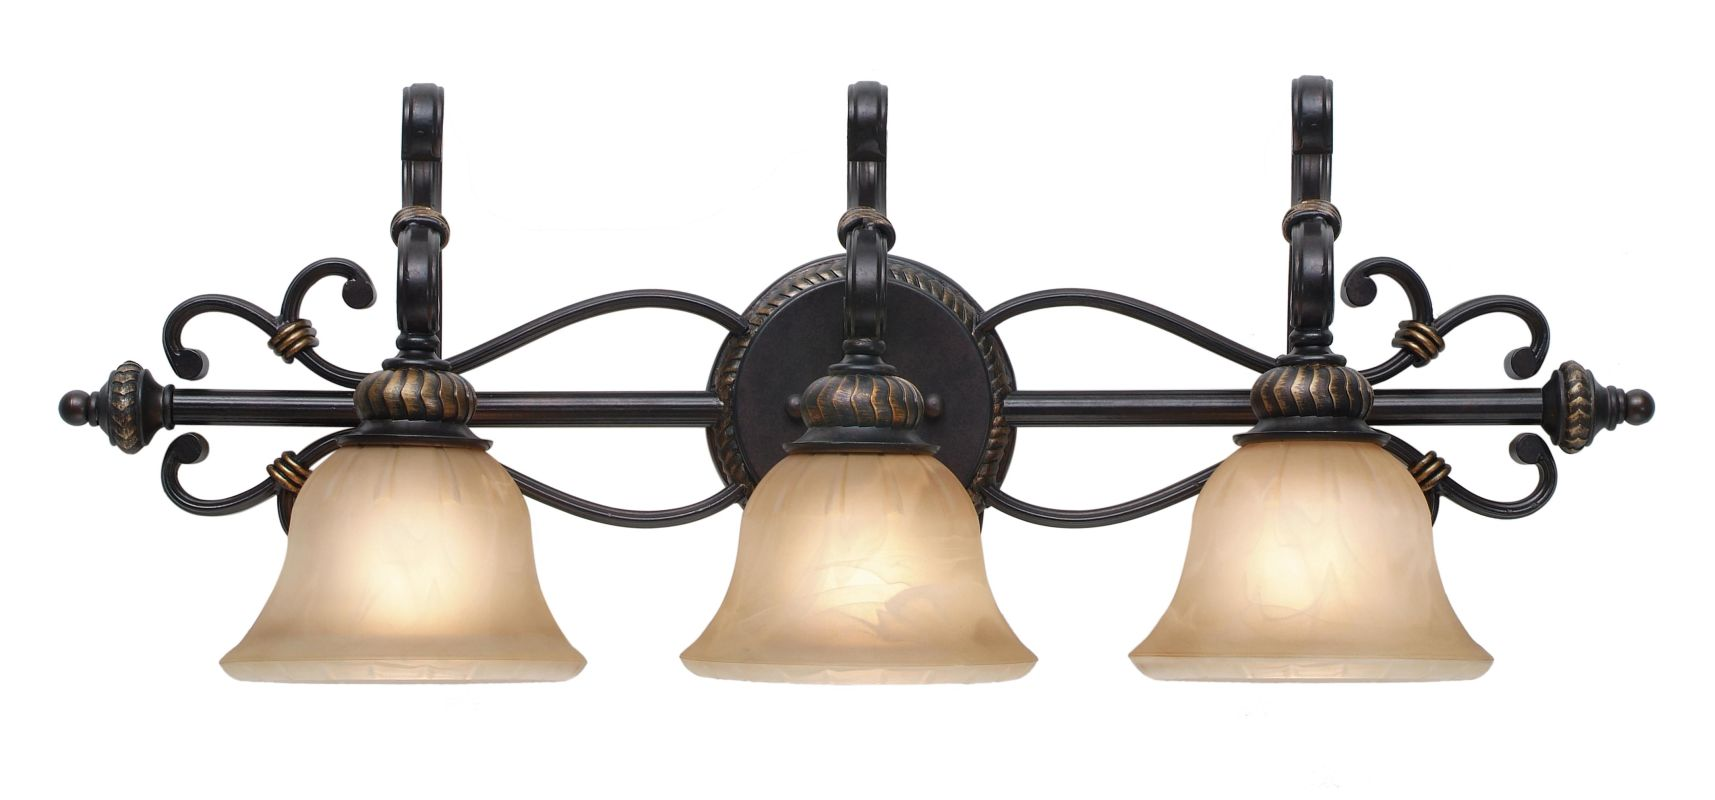 Golden Lighting 6029-BA3 Three Light Bathroom Fixture from the